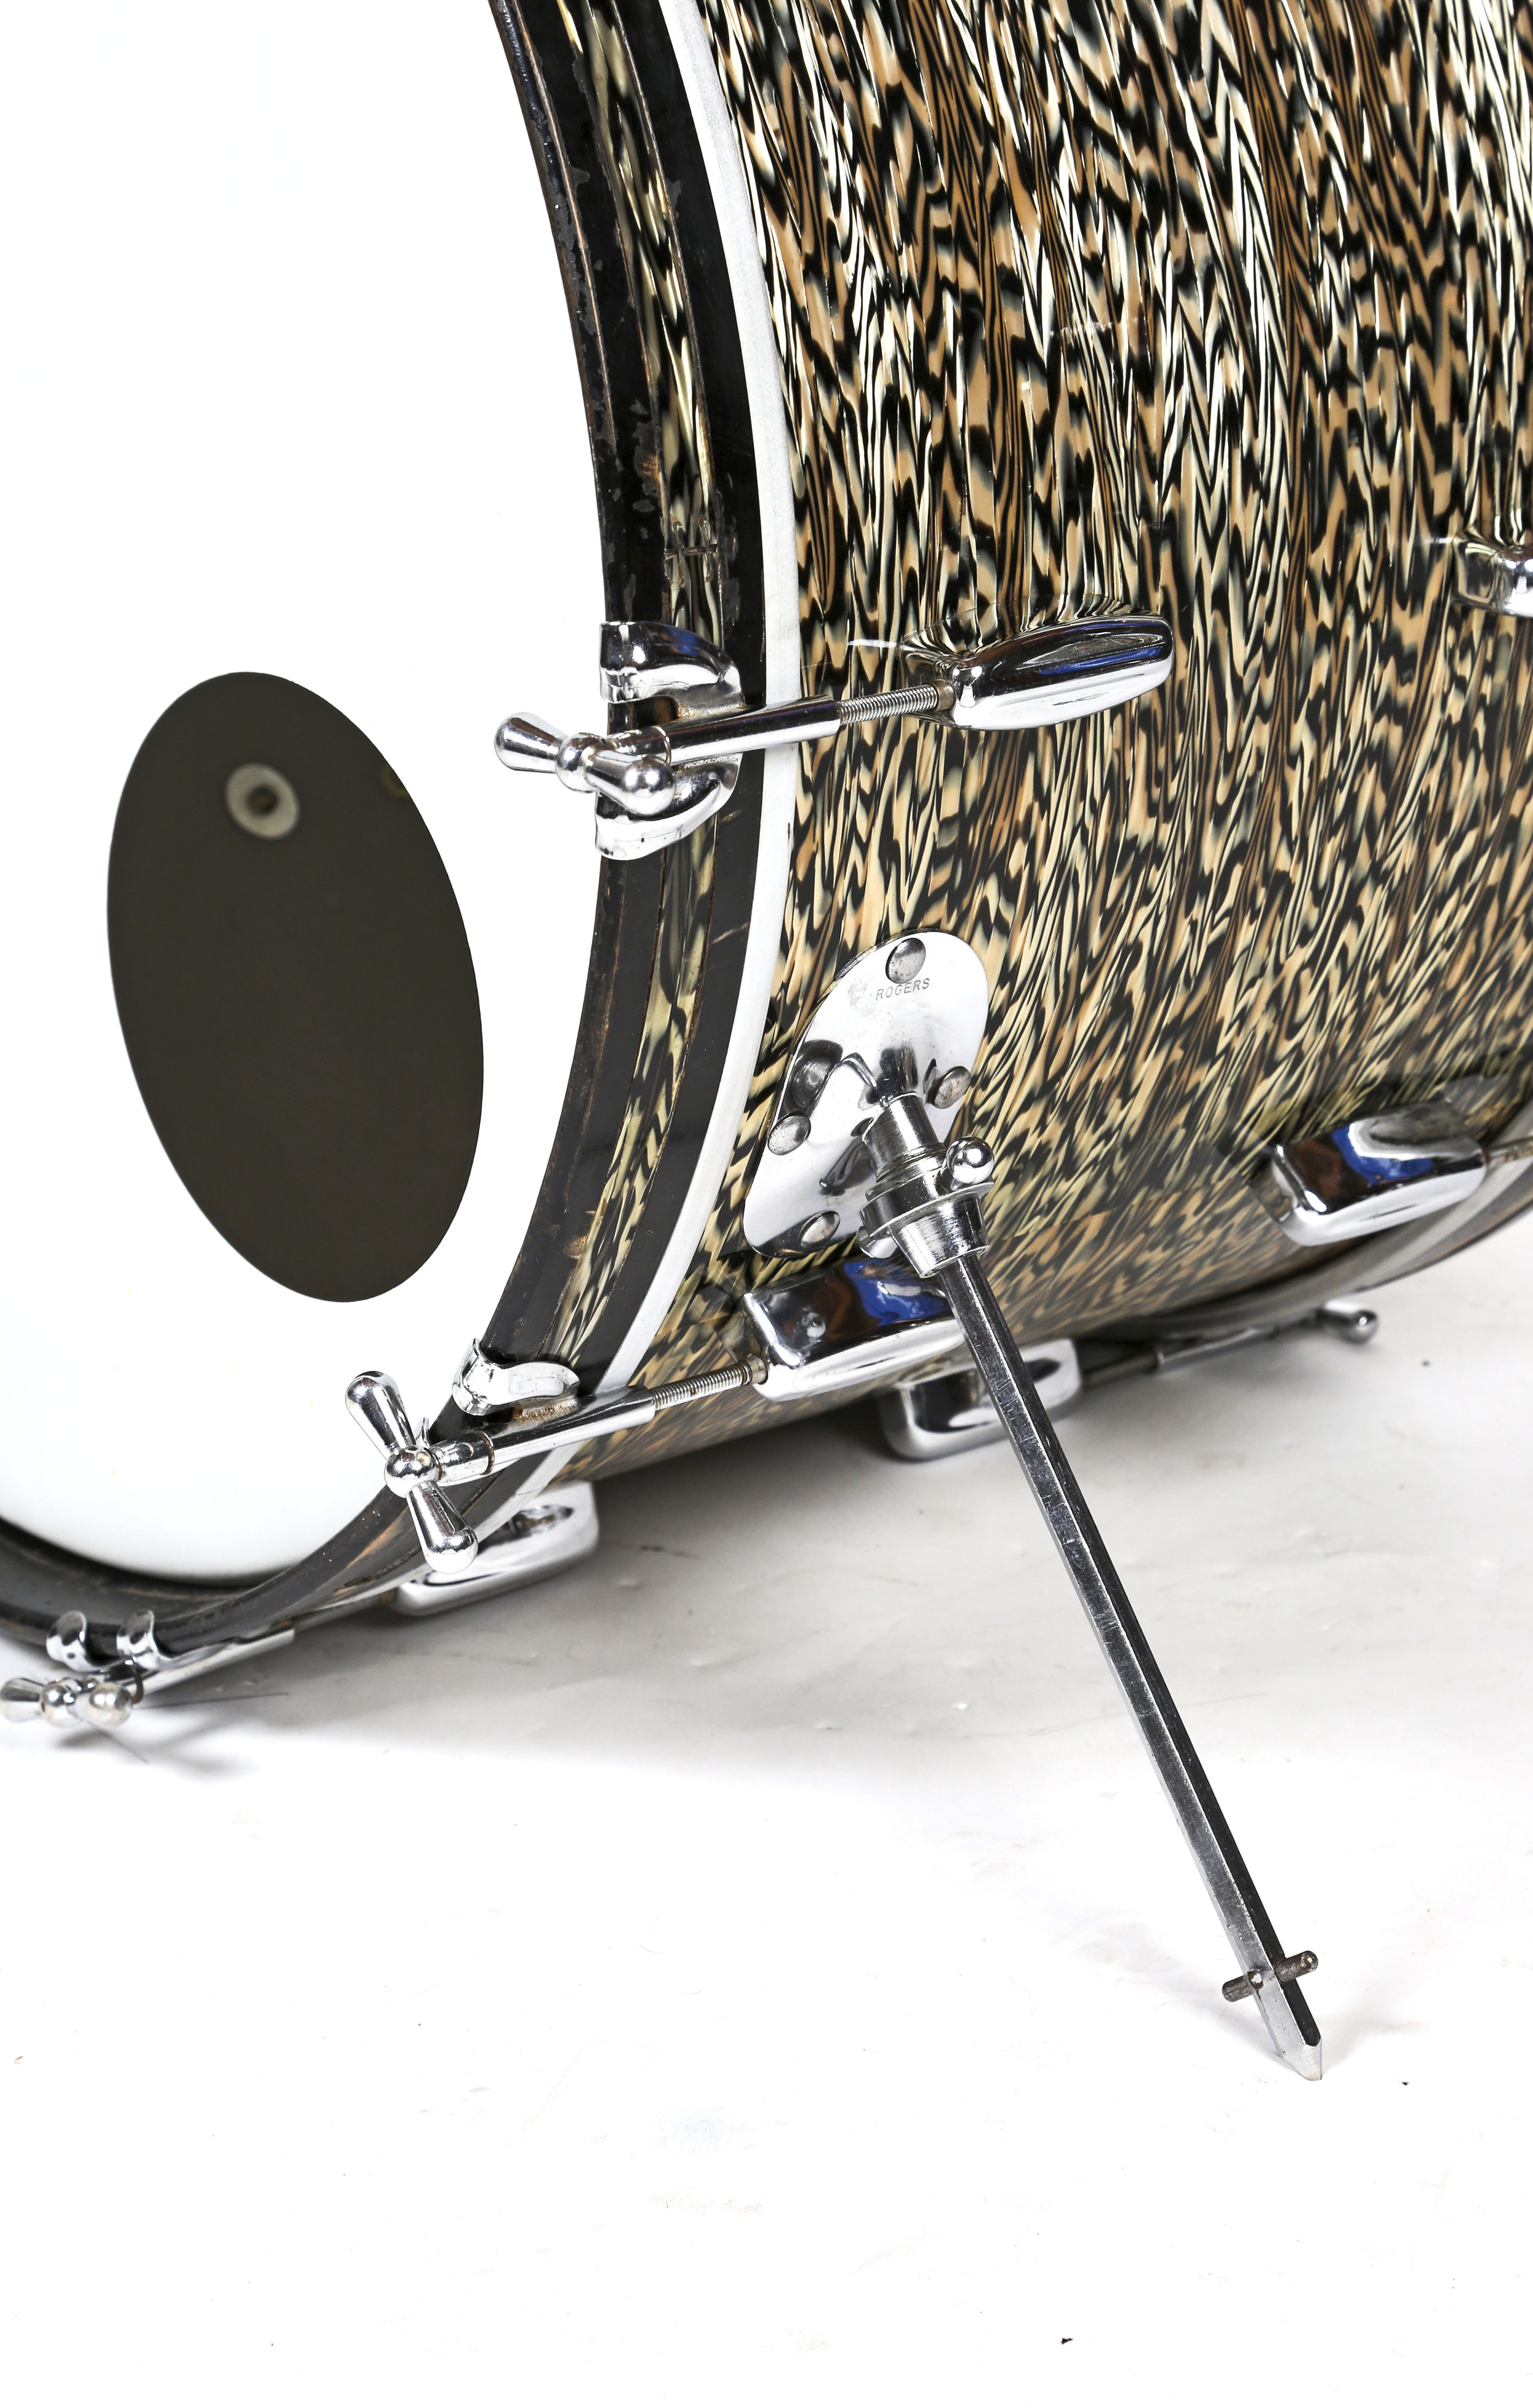 Dorio Vintage Drum_C&C Big Red_1969.jpg